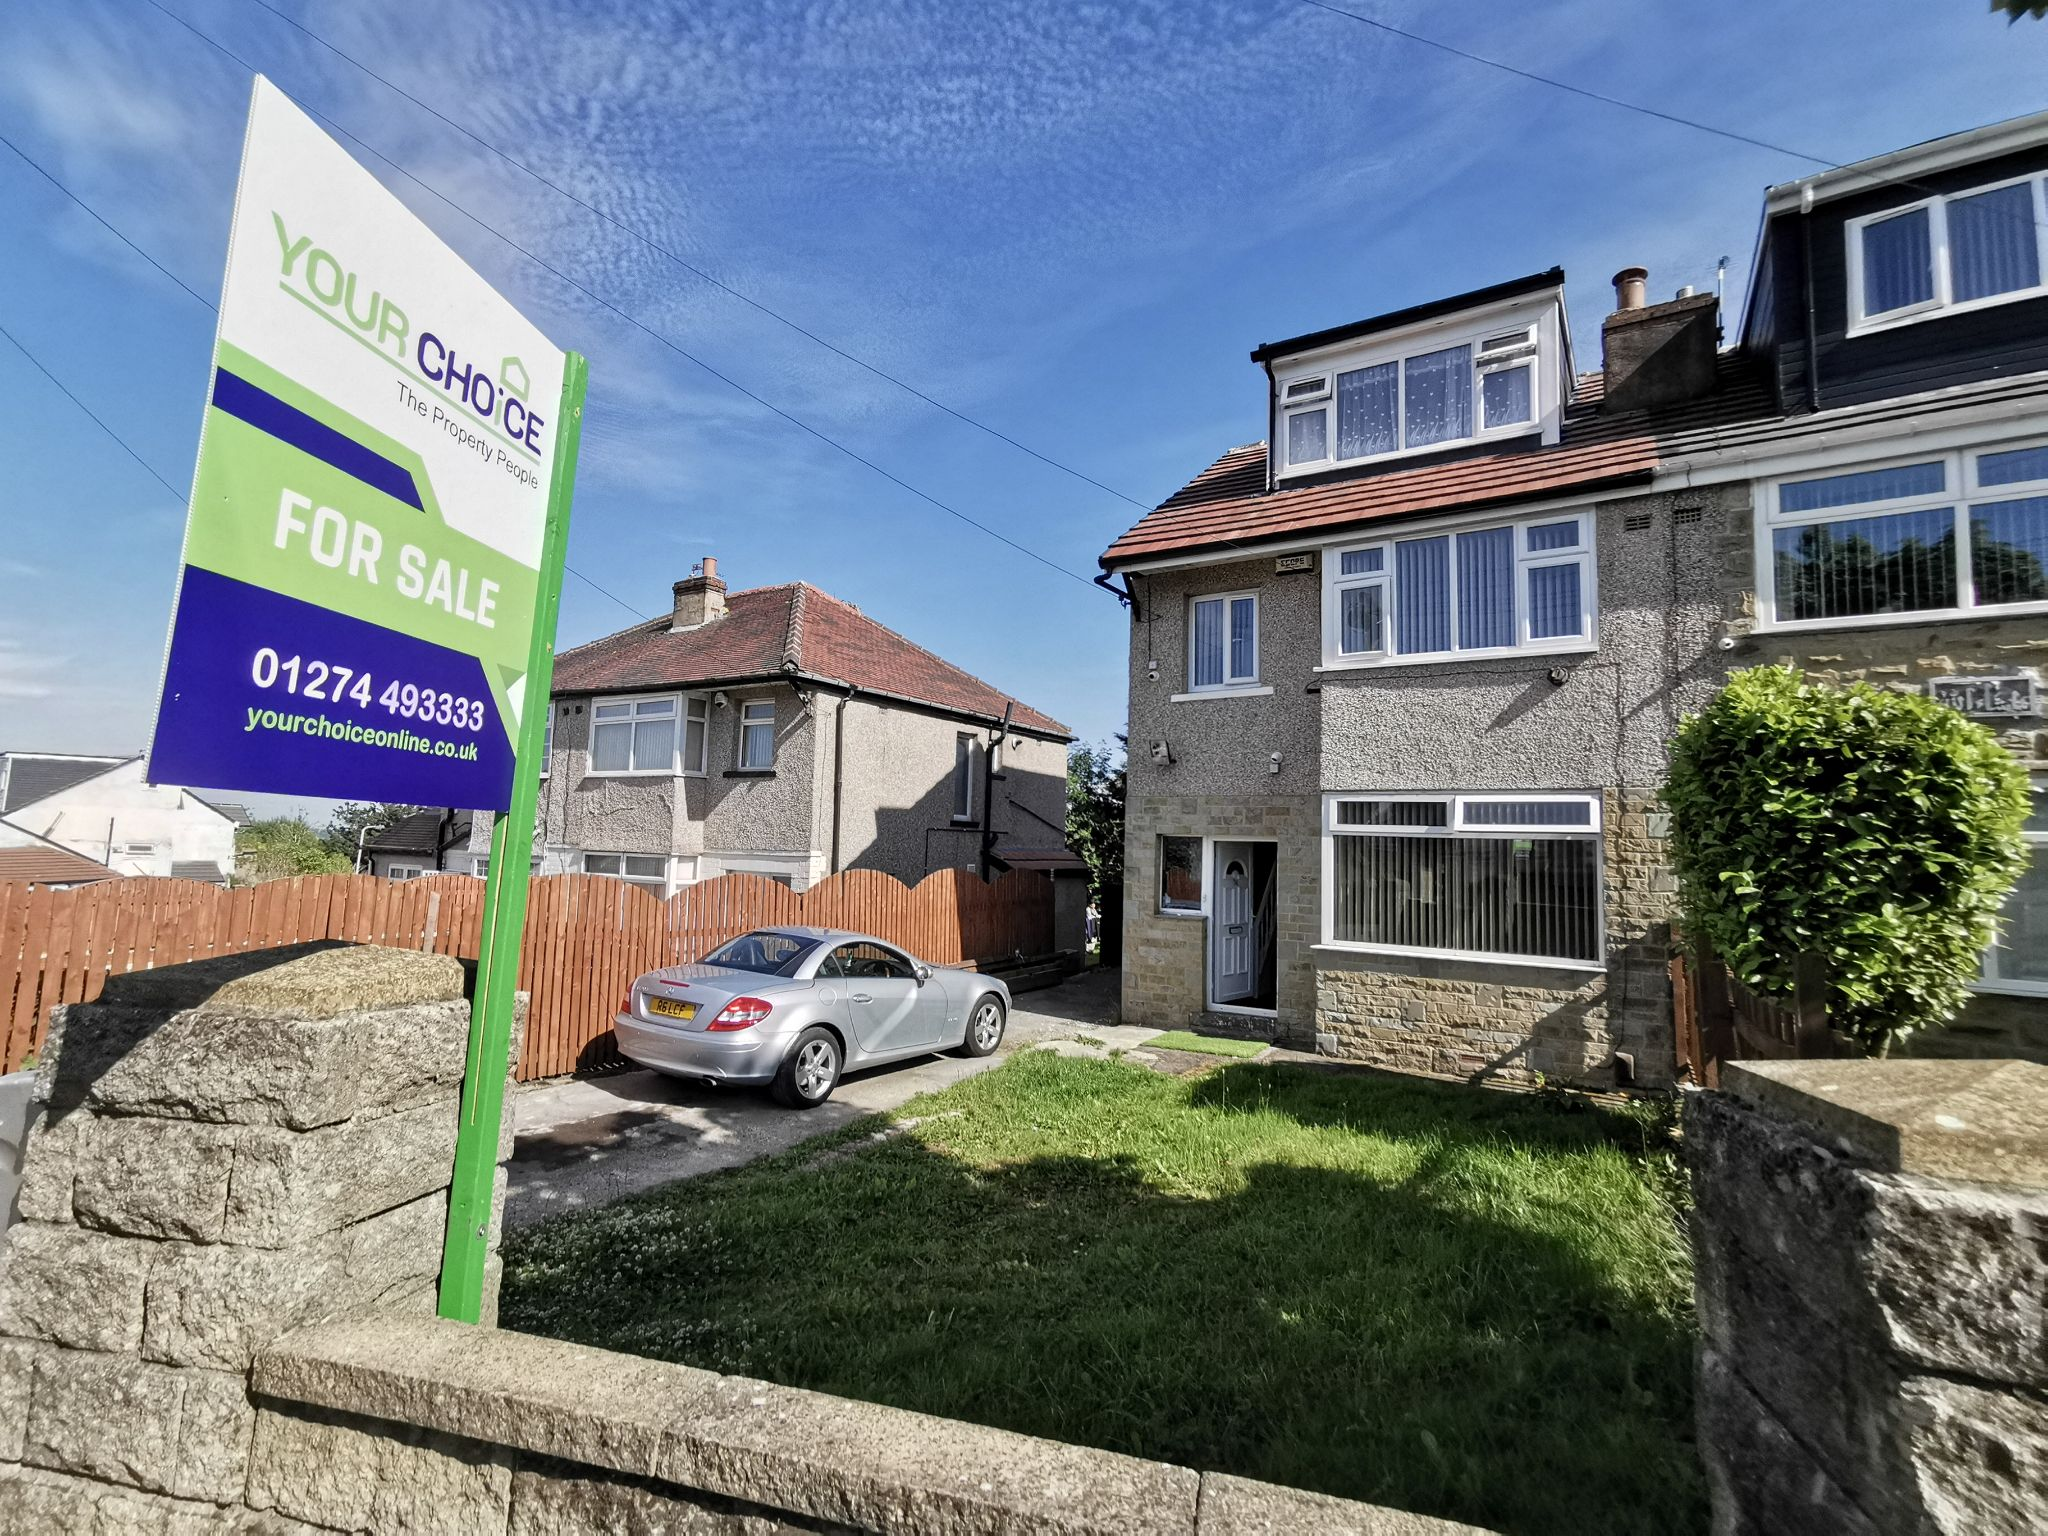 4 bedroom semi-detached house SSTC in Bradford - Photograph 22.